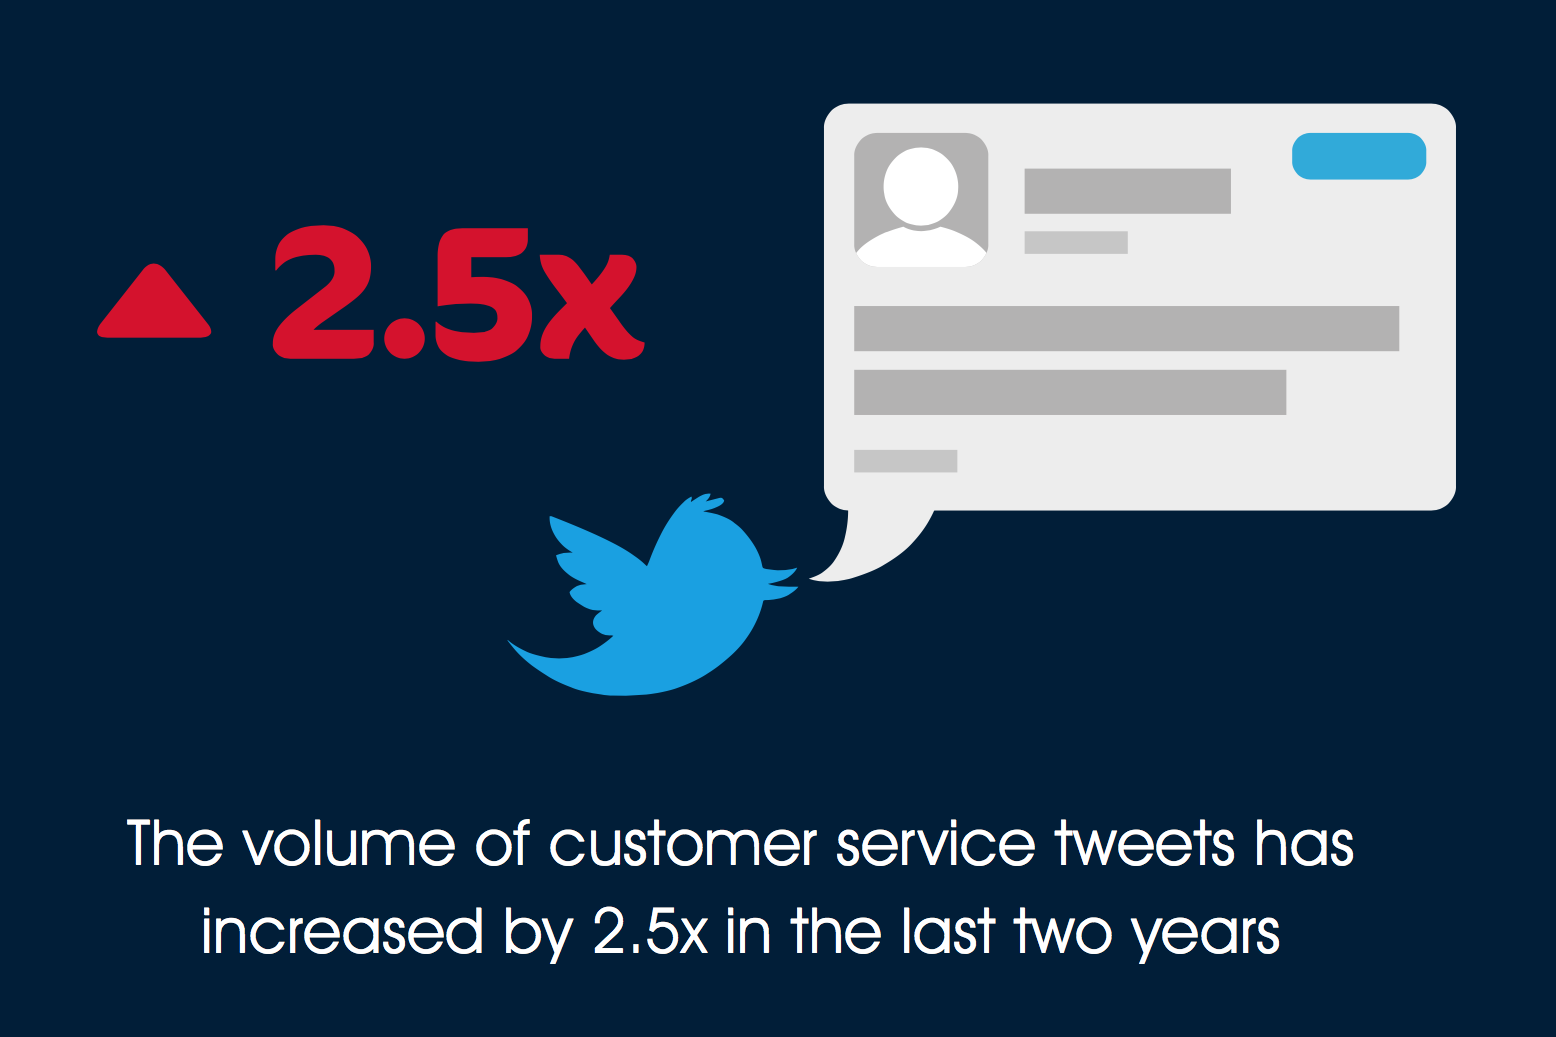 Customer Service Tweets Increased 2.5x In Last Two Years